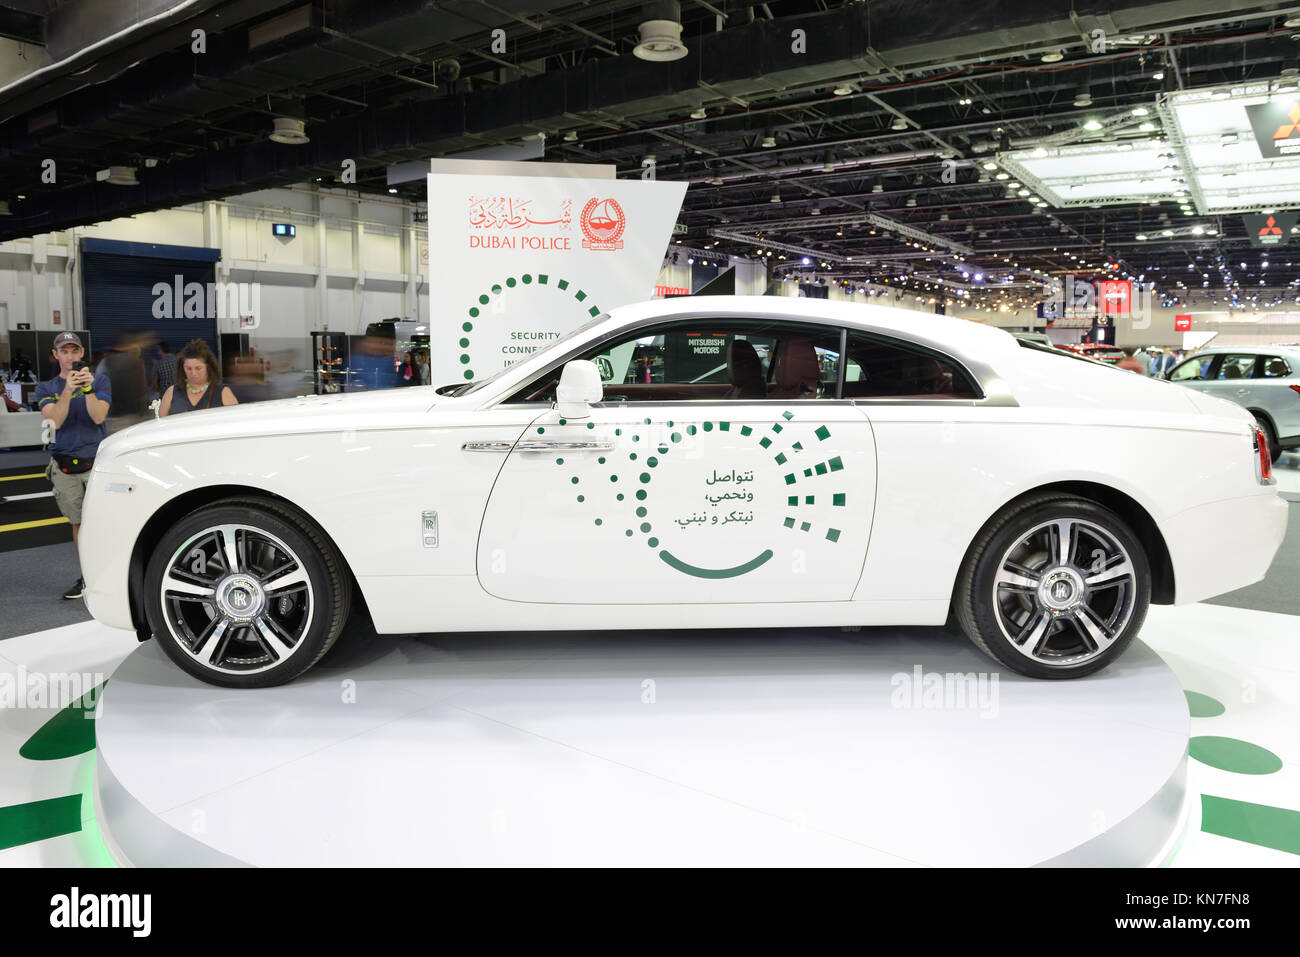 Dubai Uae November 18 The Rolls Royce Wraith Of Dubai Police Car Stock Photo Alamy